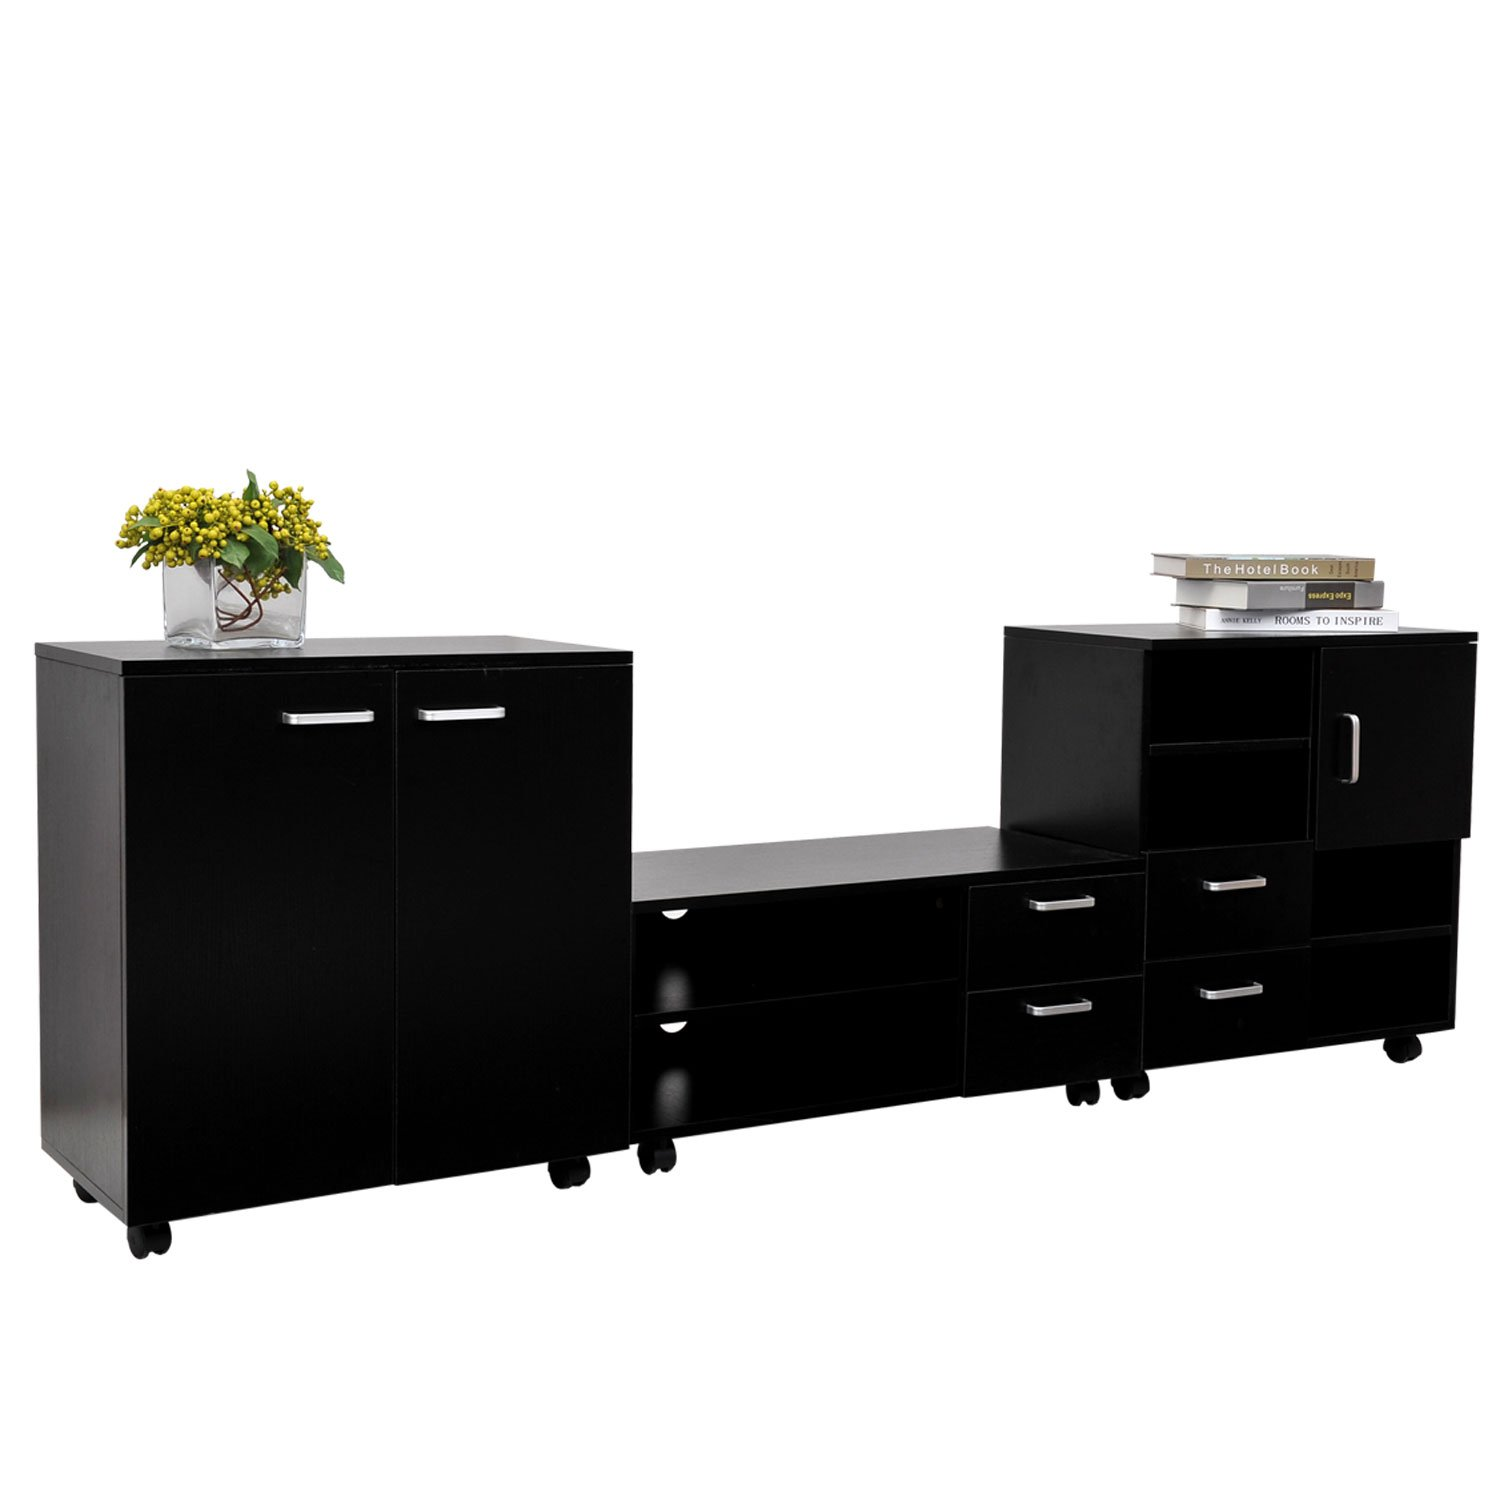 HOMCOM Living Room Mobile 3 Piece Trio Furniture Set TV Cabinet + Besides +  Storage Chest Black New: Amazon.co.uk: Kitchen U0026 Home Part 74